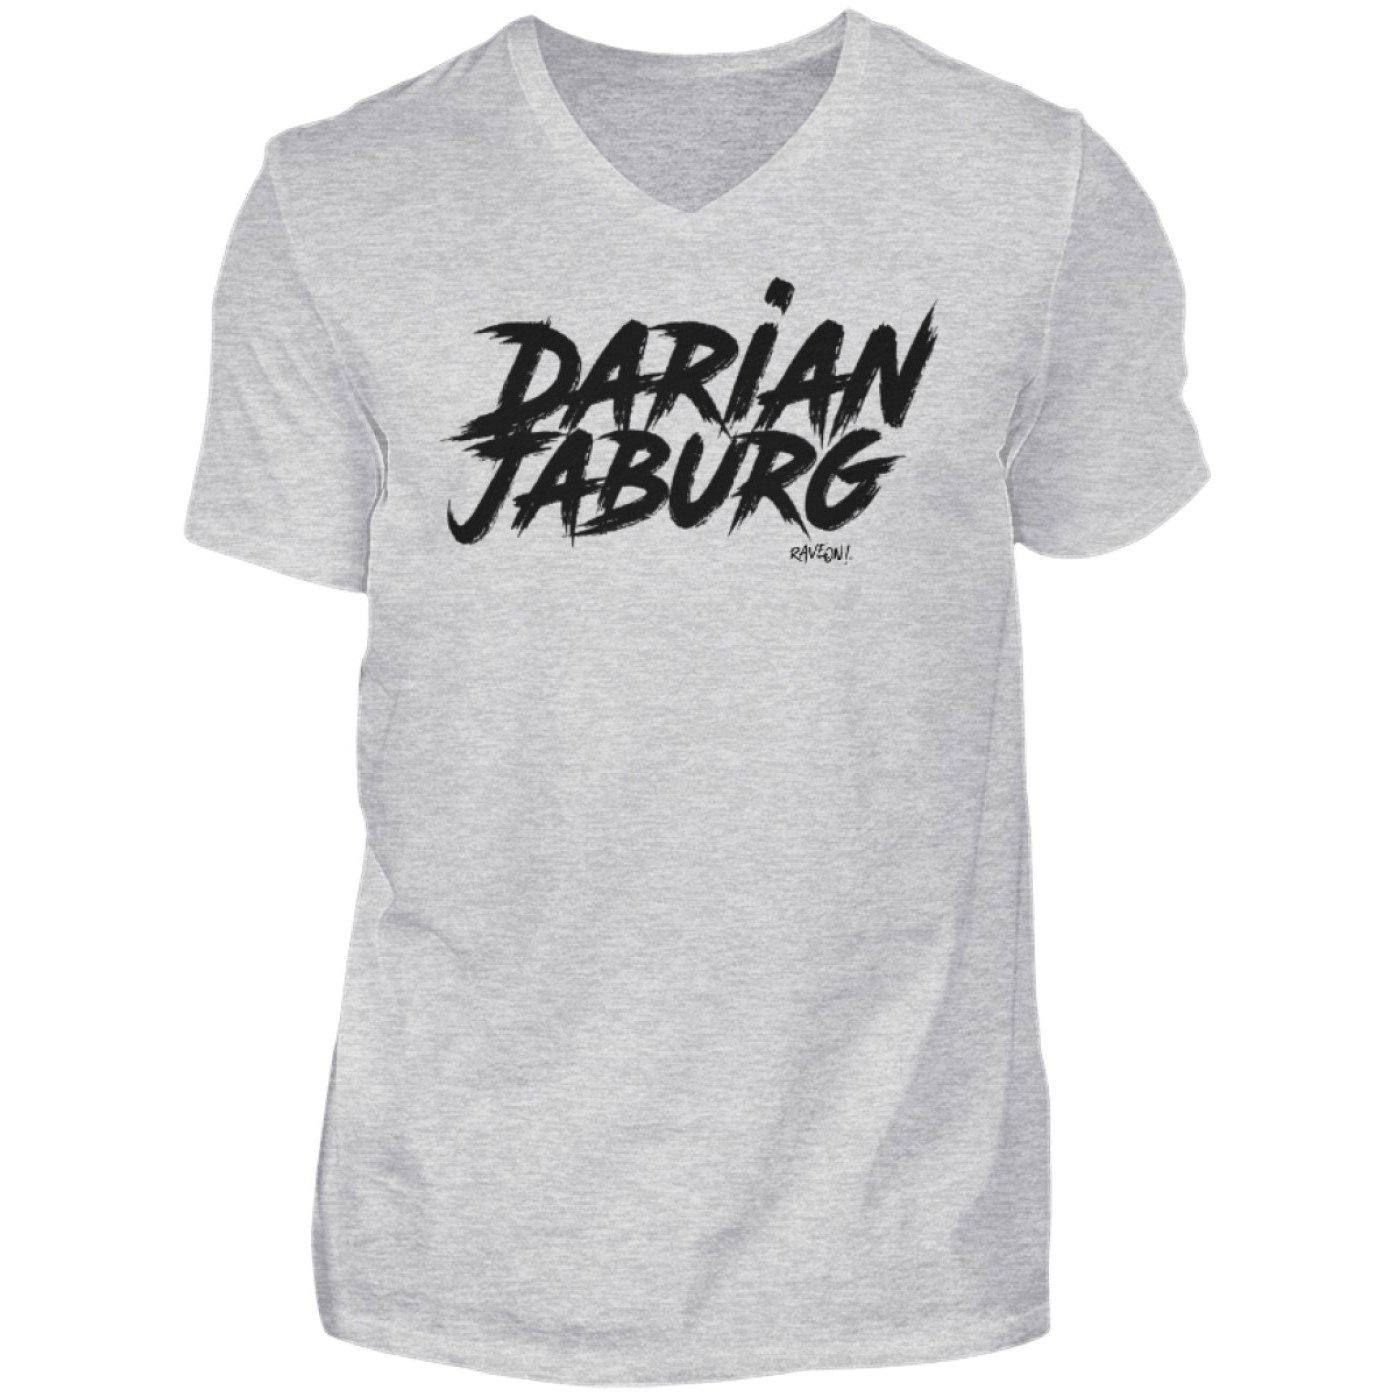 Darian Jaburg - BS Rec.White - Rave On!® - Herren V-Neck Shirt V-Neck Herrenshirt Sport Grey (Heather) / S - Rave On!® der Club & Techno Szene Shop für Coole Junge Mode Streetwear Style & Fashion Outfits + Sexy Festival 420 Stuff